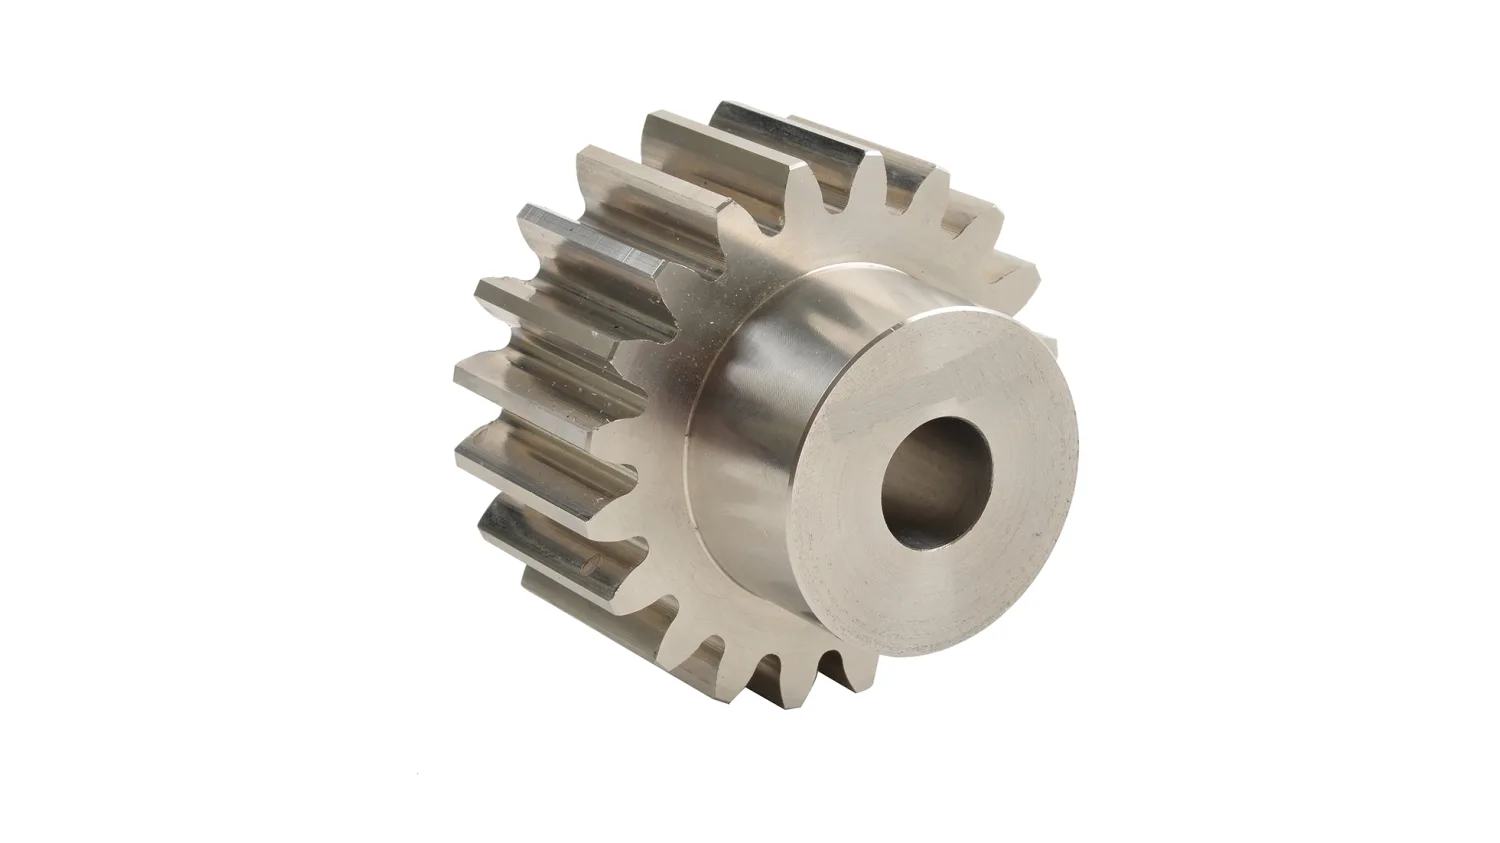 3-Mod-x-45-Tooth-Metric-Spur-Gear-in-Steel